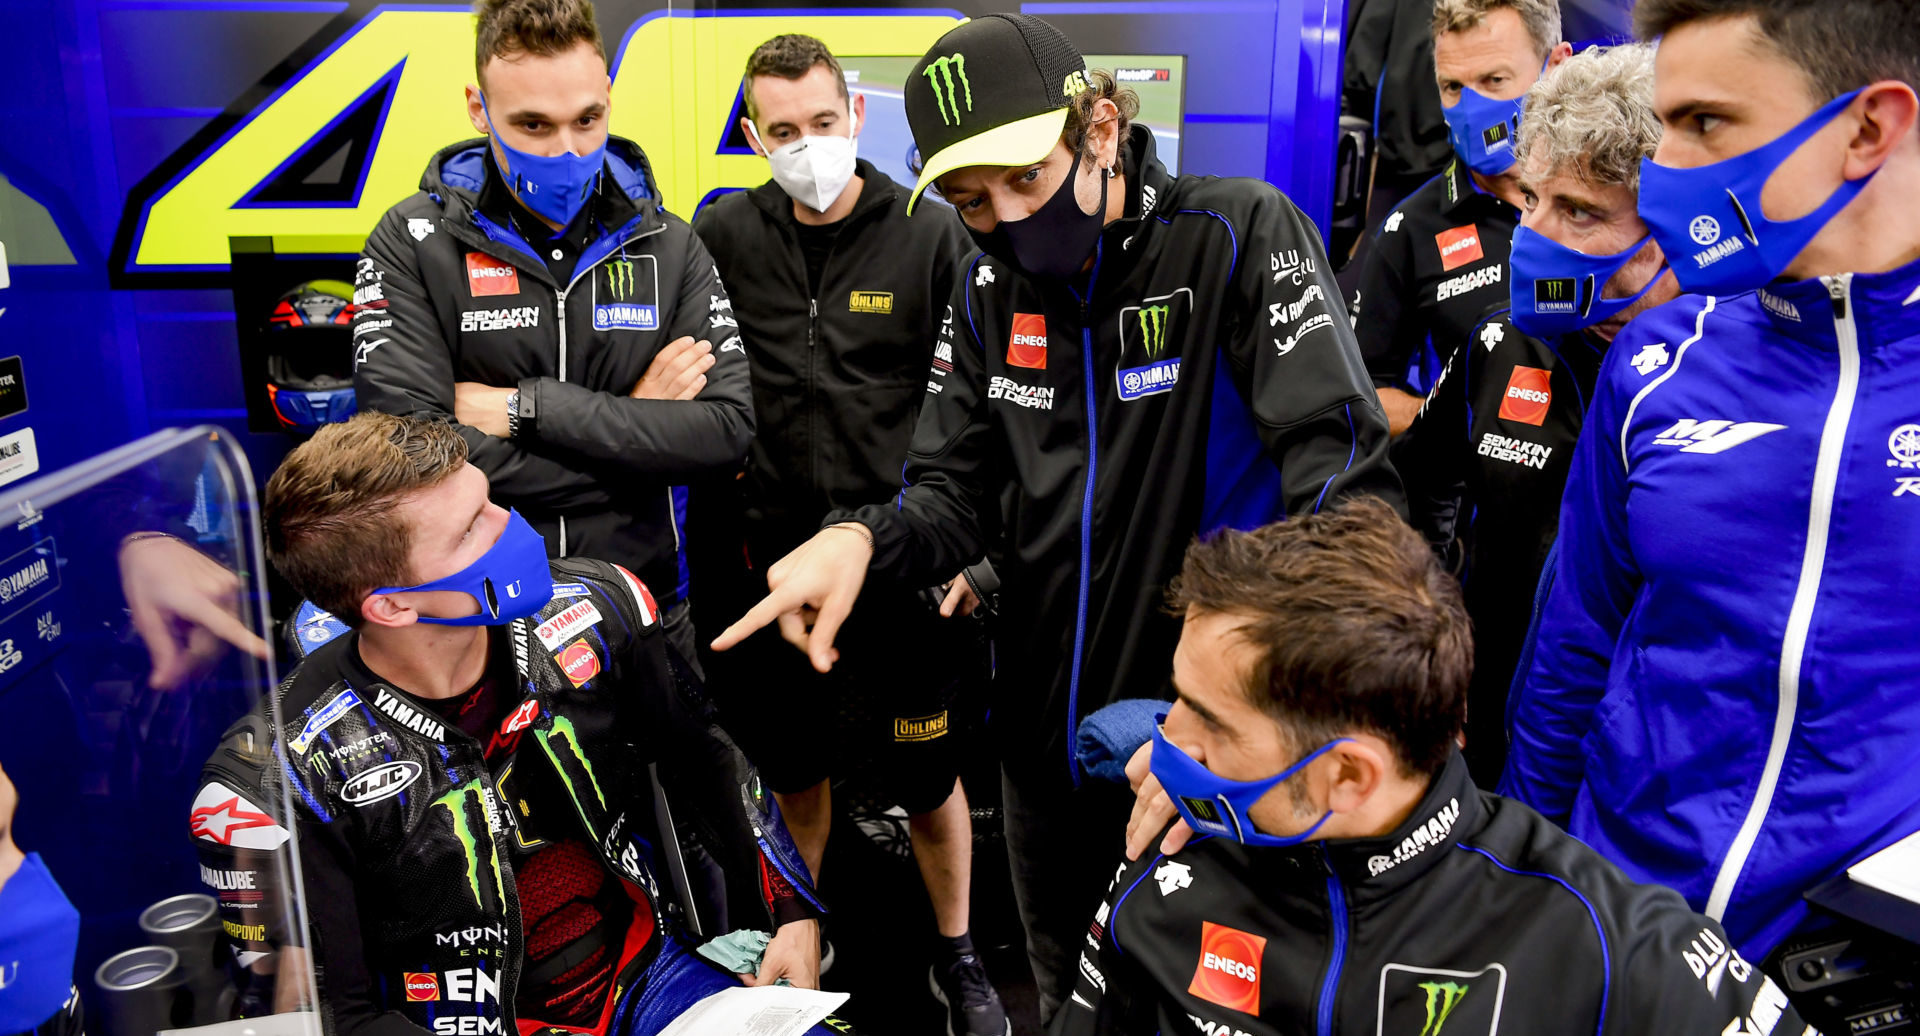 After passing a second COVID-19 test, Valentino Rossi (in Monster Energy hat) will take over for